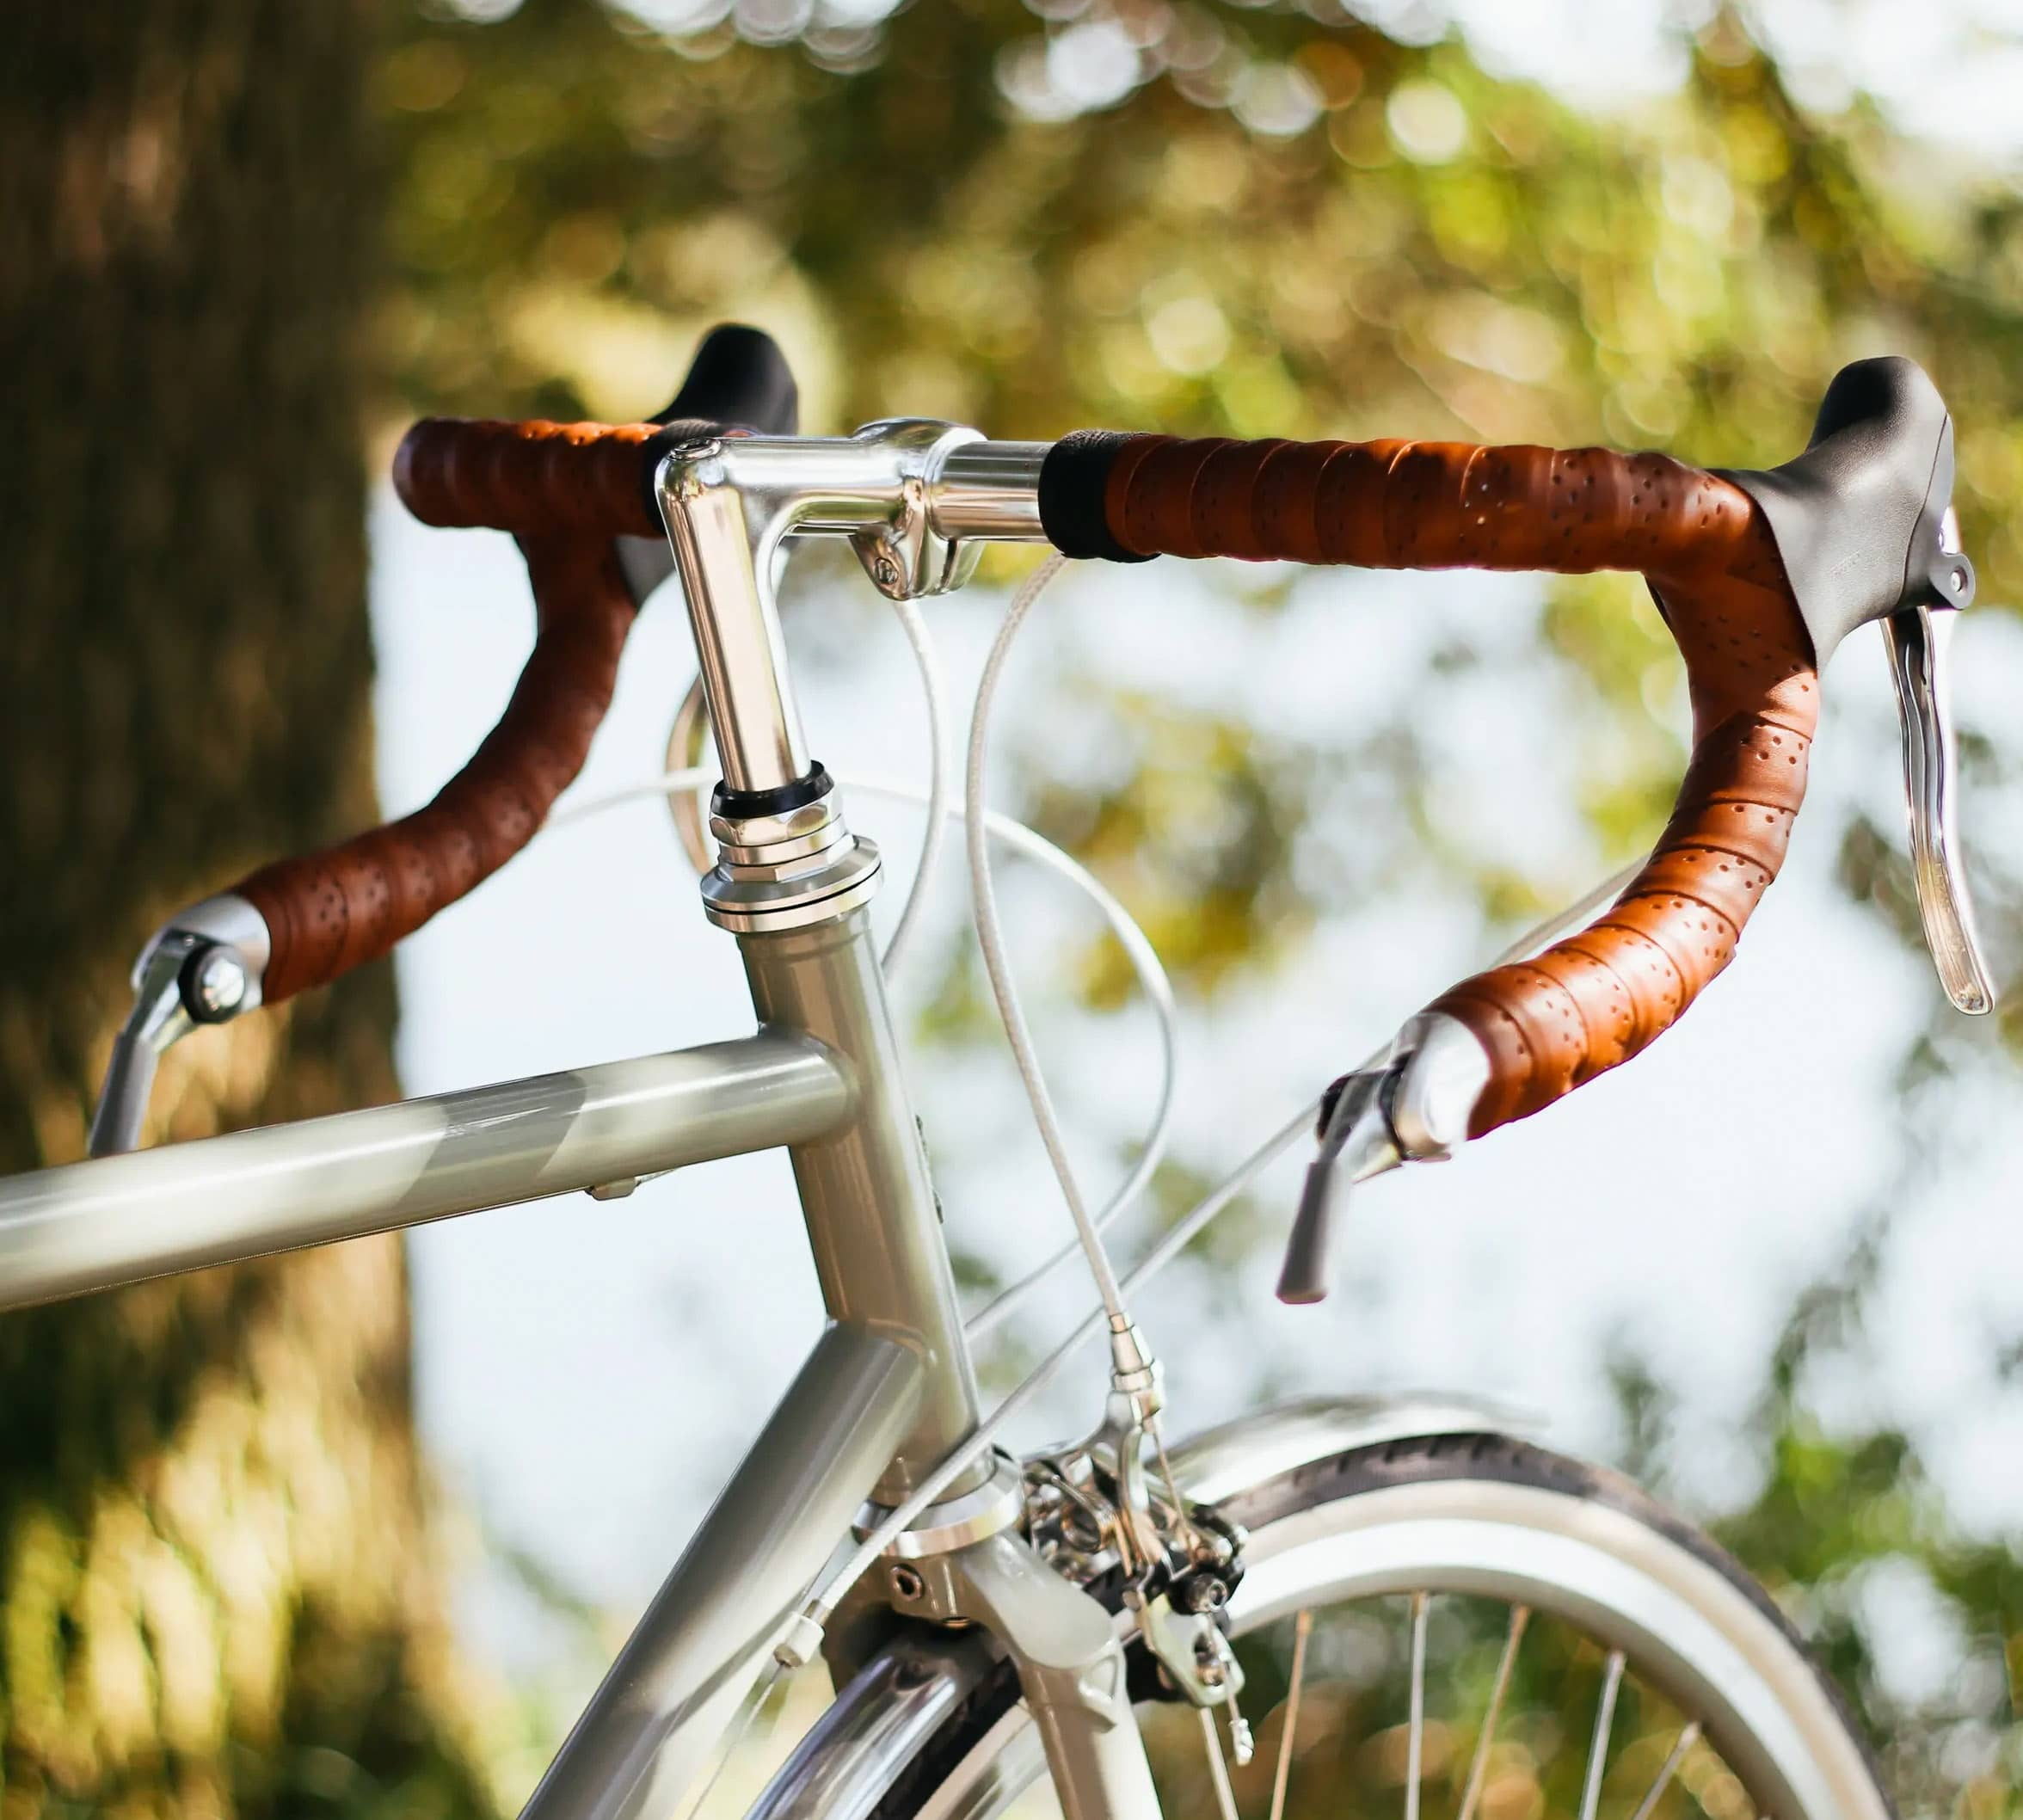 PANDEMIC A BOON FOR THE BICYCLE AS THOUSANDS SNAP THEM UP